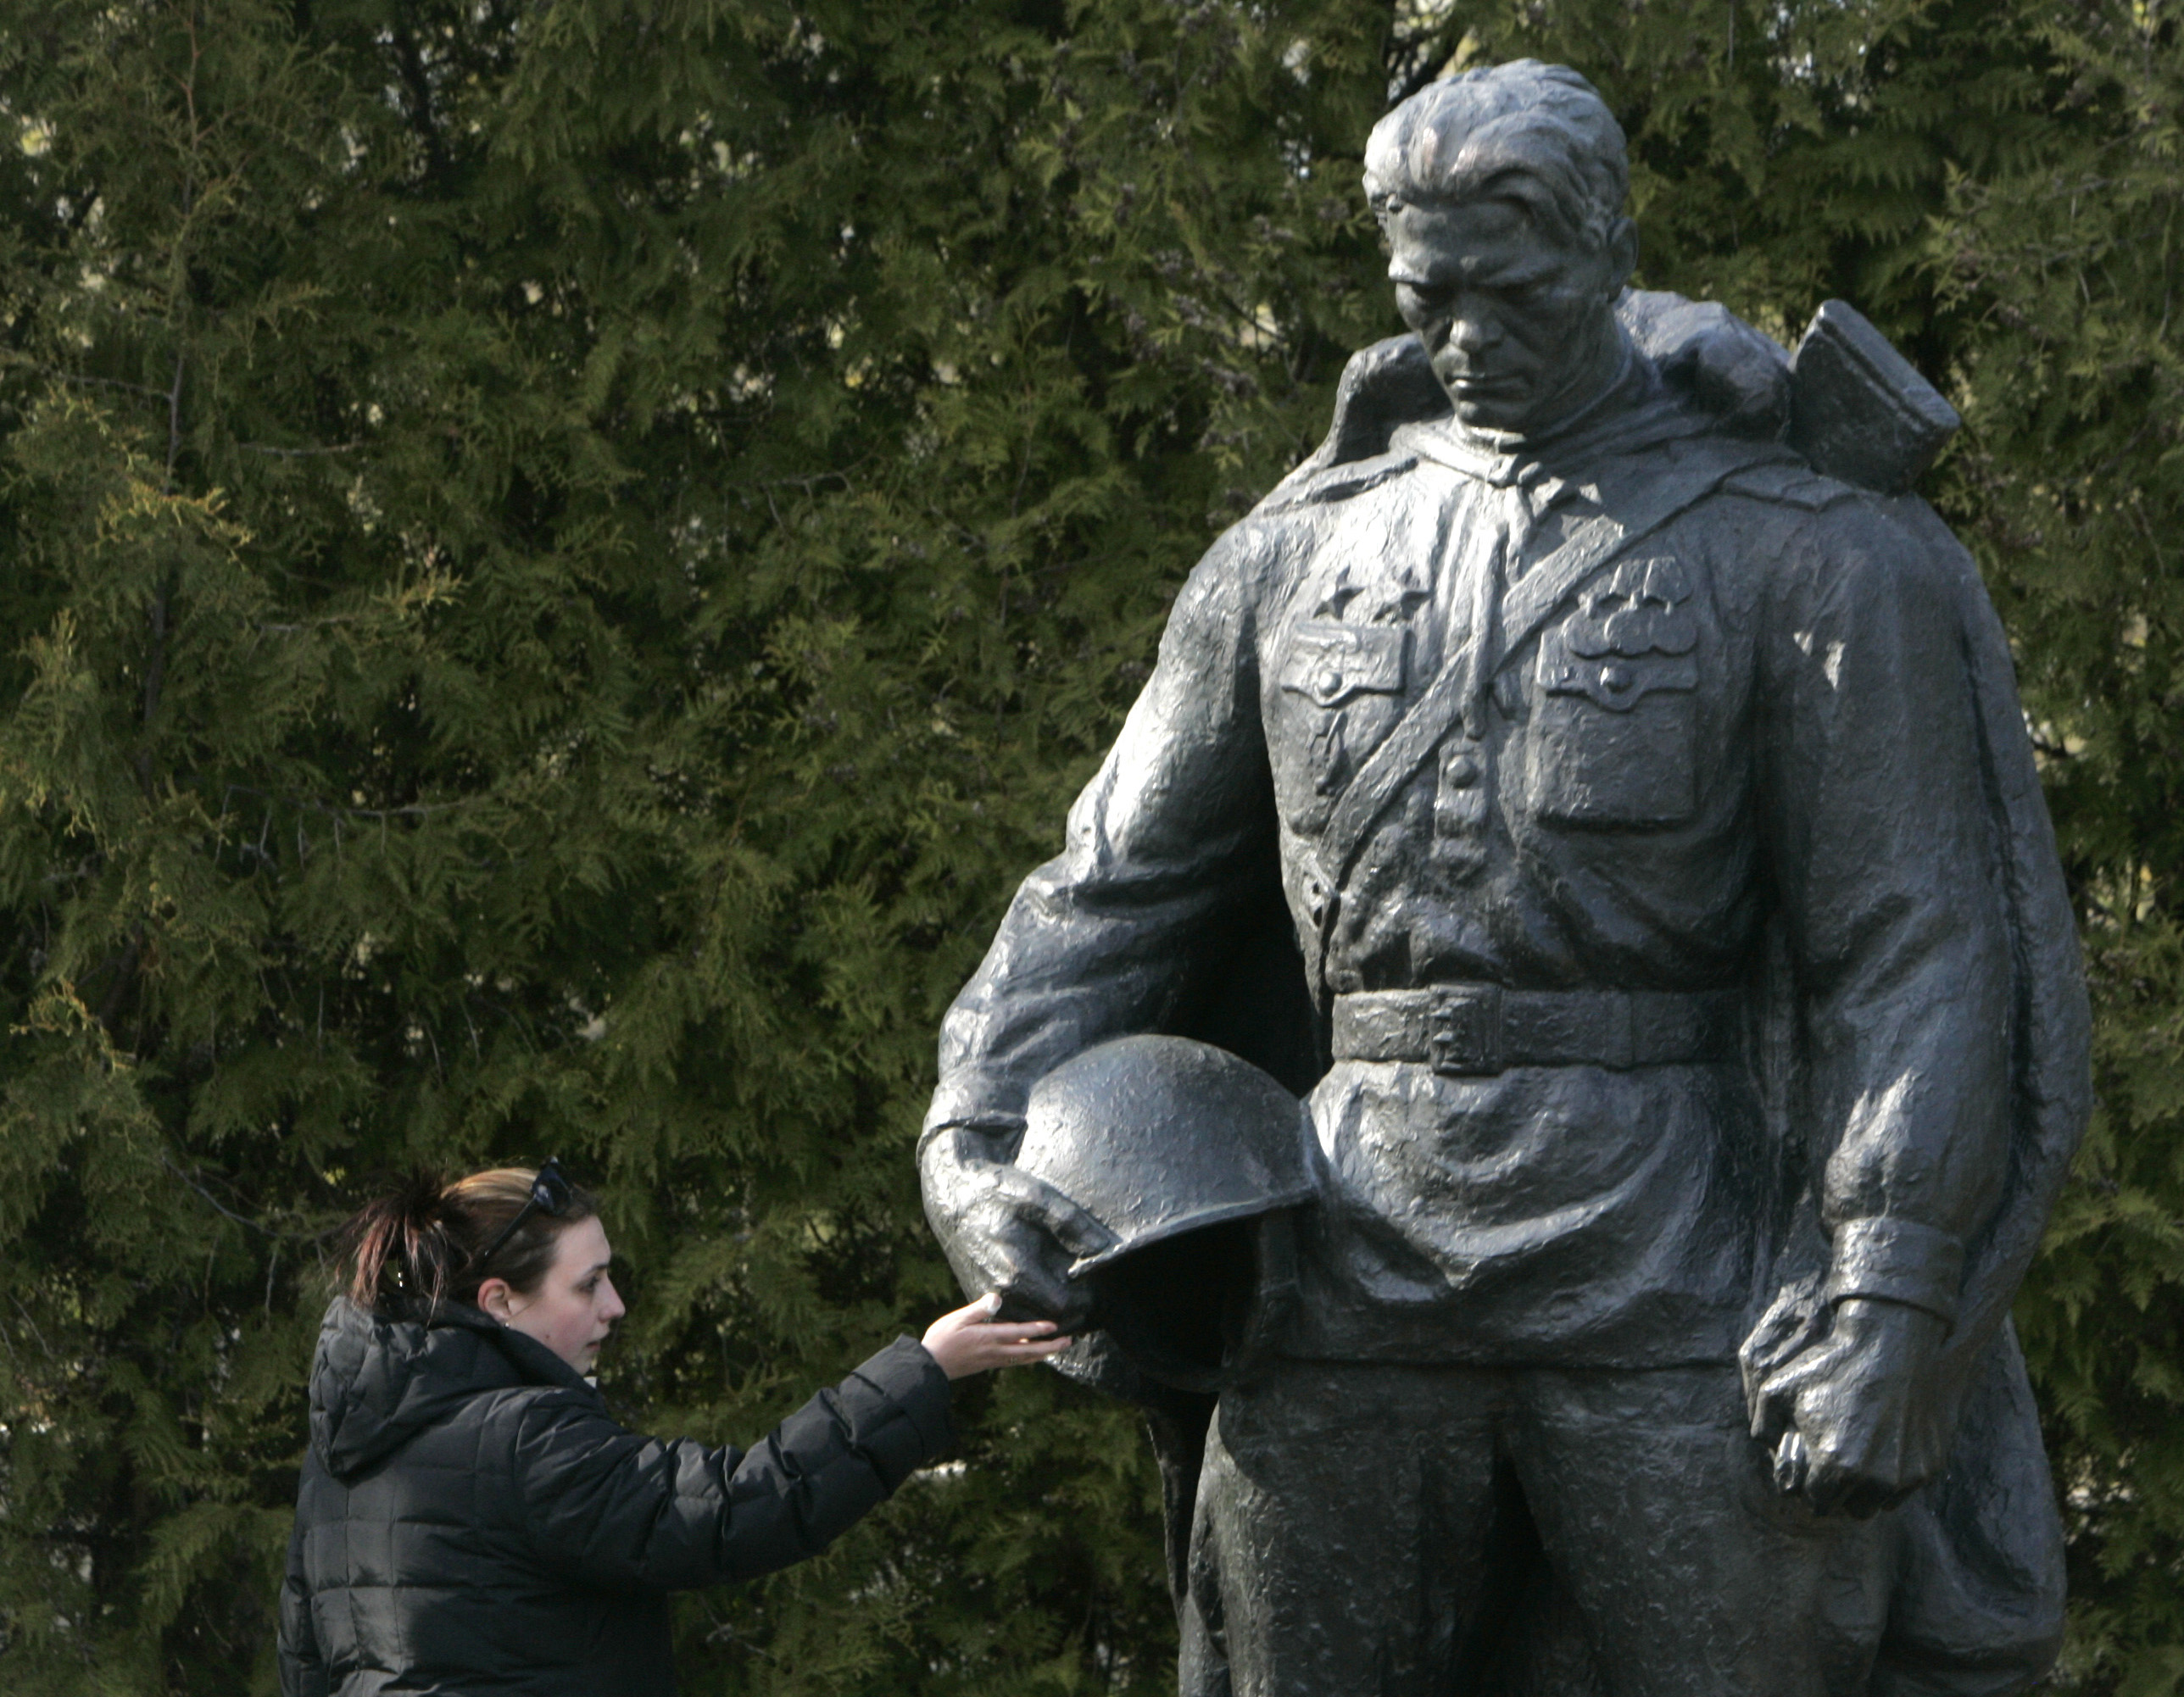 A woman touches a bronze statue of a World War Two Red Army soldier that was relocated from the city centre to a military cemetery in Tallinn April 30, 2007. Estonia put up the disputed Soviet Army monument in its new location on Monday after moving it last week from the centre of the capital amid riots by mainly Russian-speaking protesters. Tensions between the small Baltic state and Russia remained over the monument and Estonia protested over Russian inaction to stop demonstrations at its embassy in Moscow. Russia has called moving the statue from the centre of Tallinn an insult to those who fought against fascism. REUTERS/Ints Kalnins (ESTONIA) - RTR1P71A